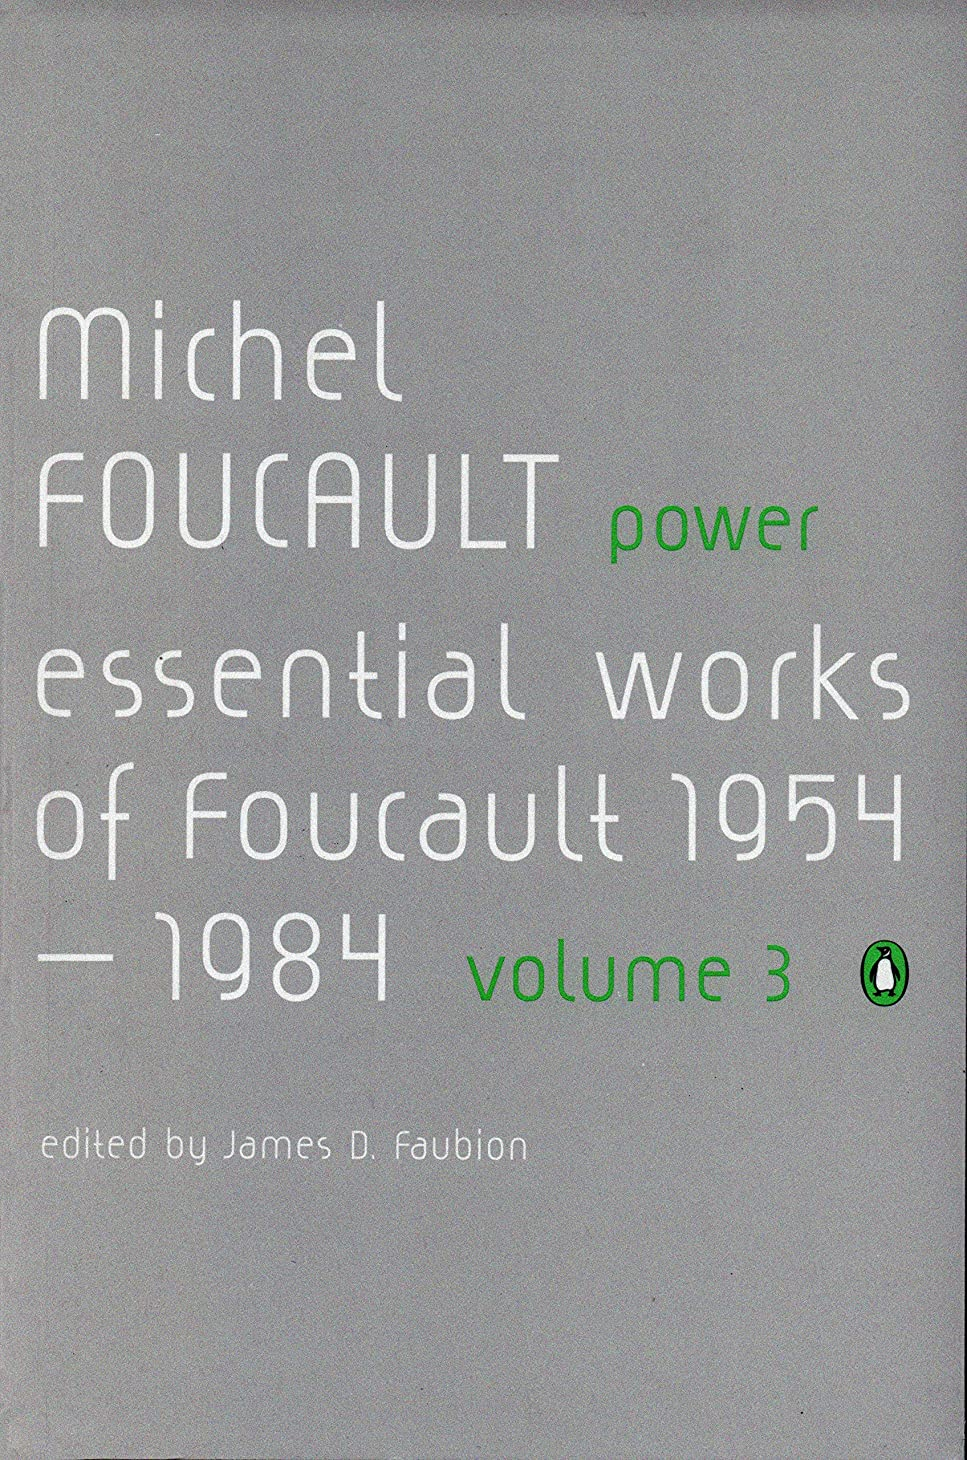 間違いなくビジネス中世のPower: The Essential Works of Michel Foucault 1954-1984 (Essential Works of Foucault 3) (English Edition)